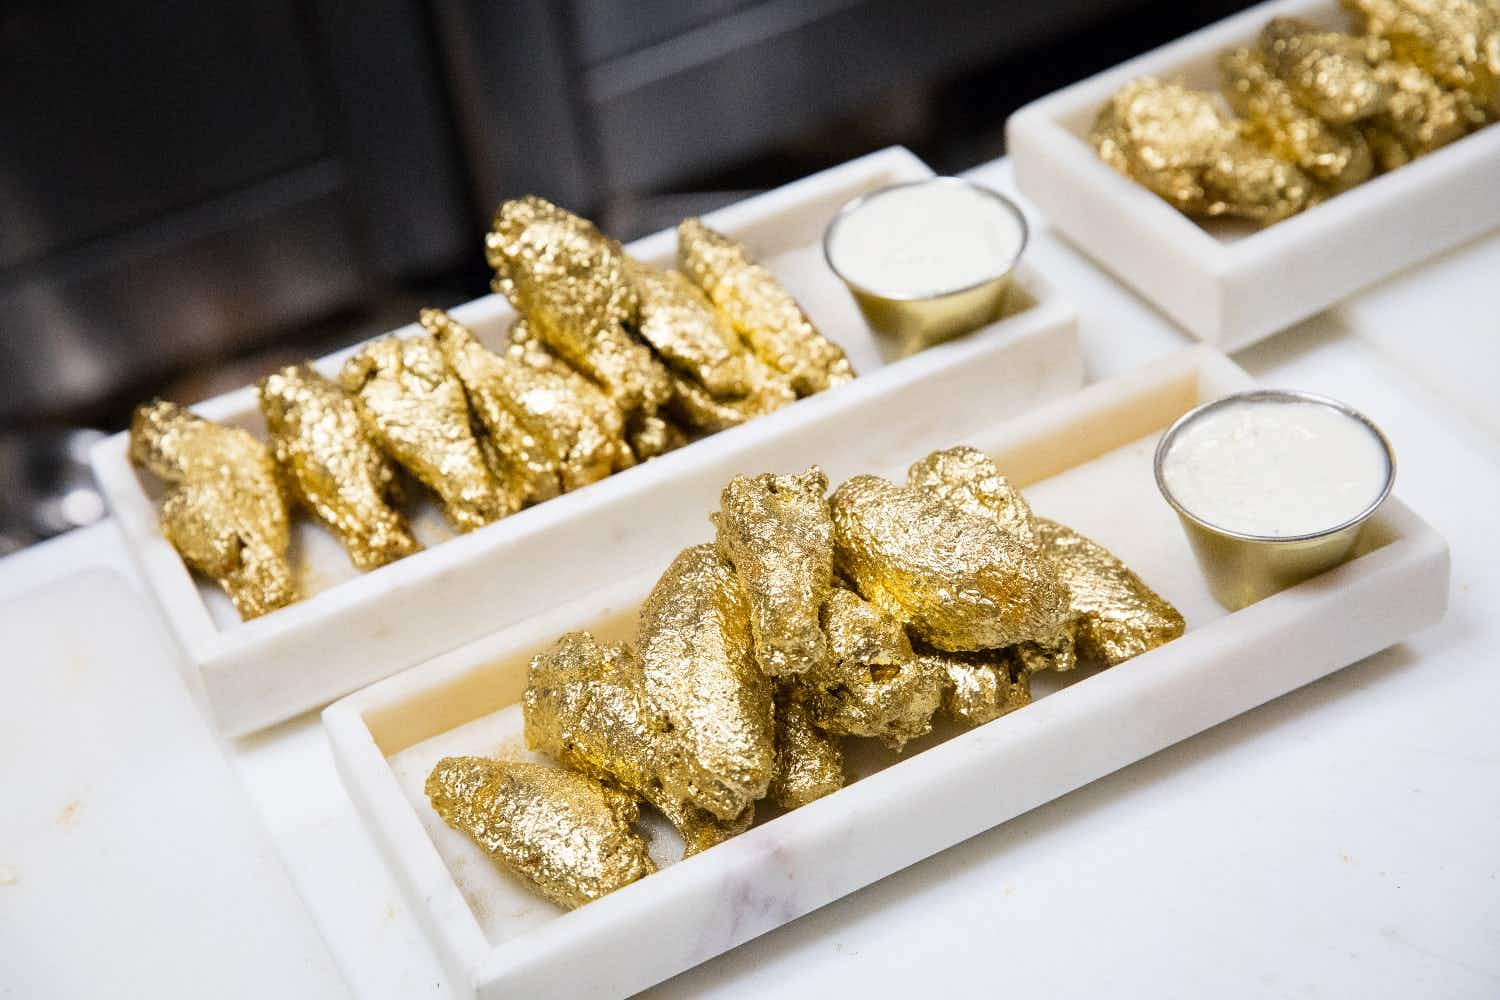 Diners in the US will be dazzled by these 24-karat gold-coated chicken wings